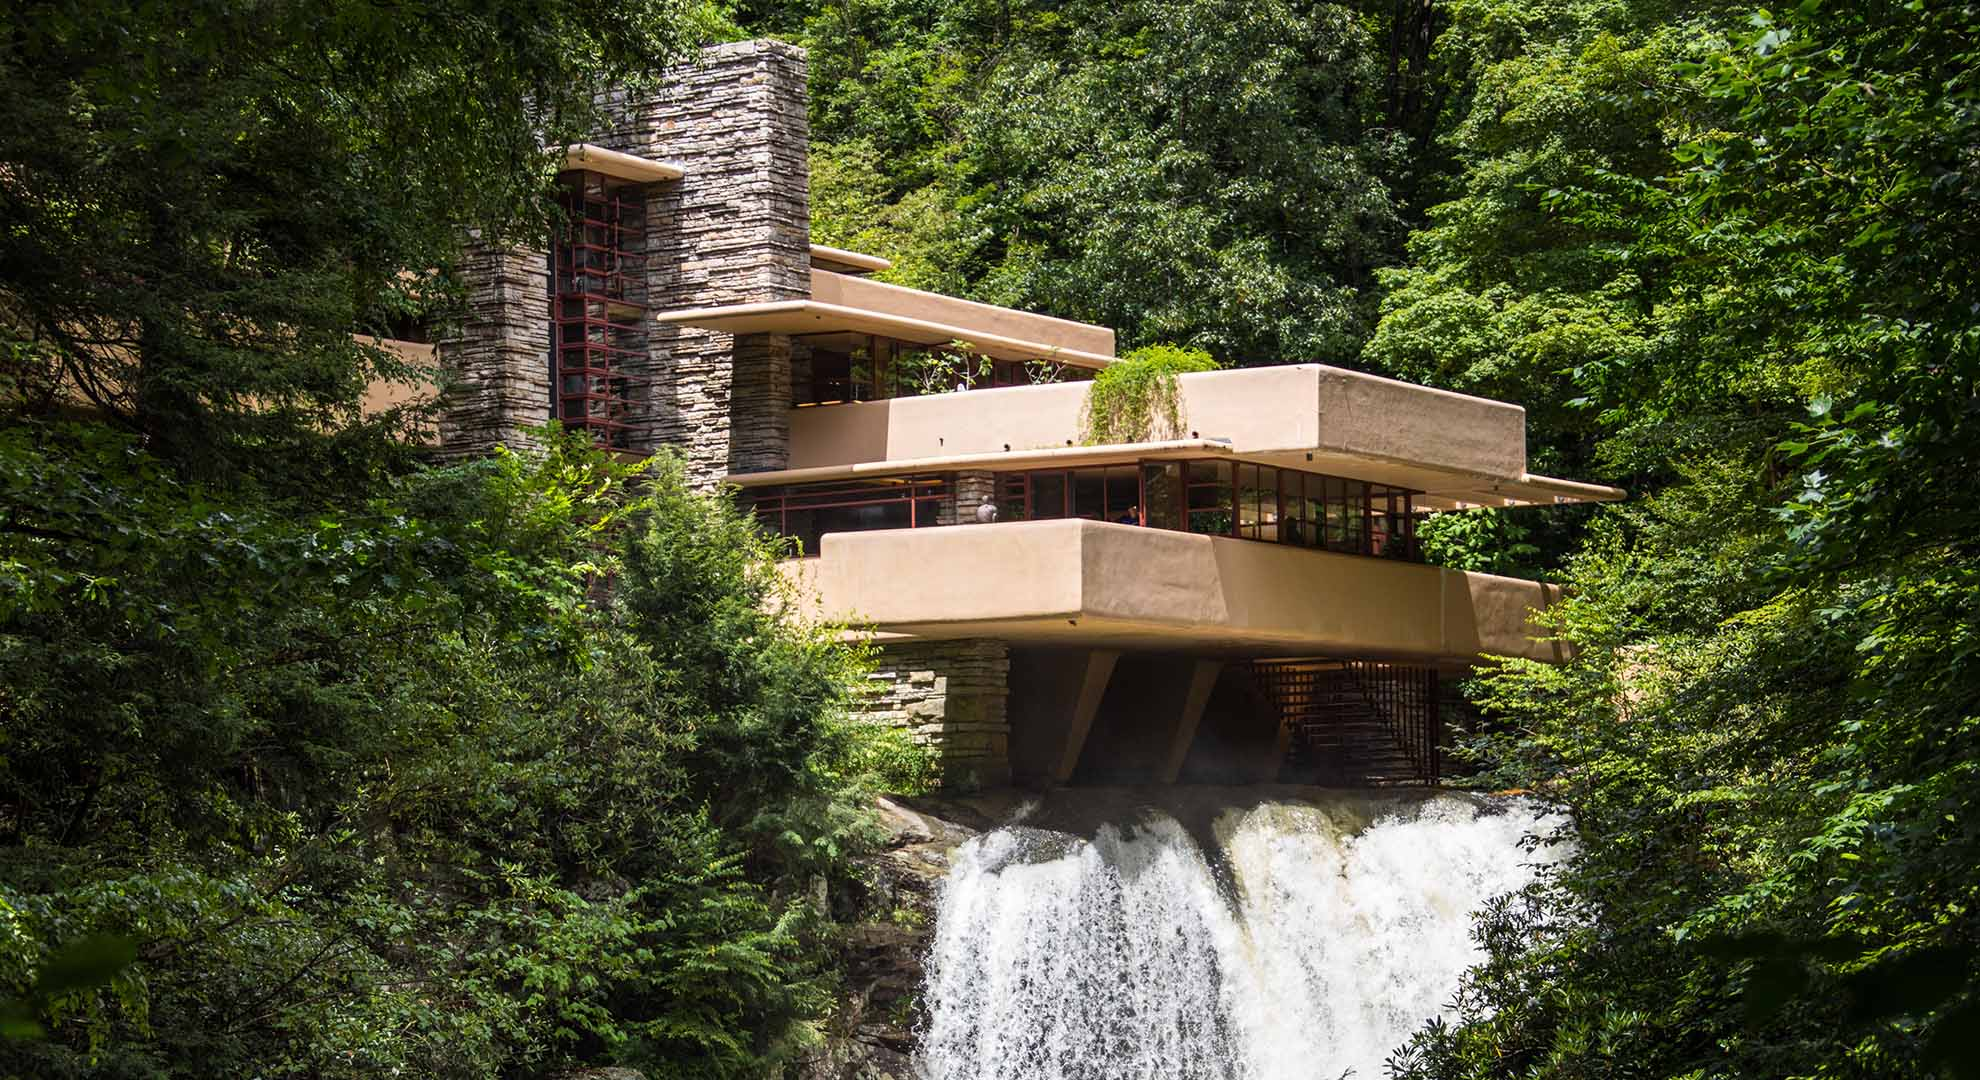 Falling Water by Frank Lloyd Wright. Example of water architecture